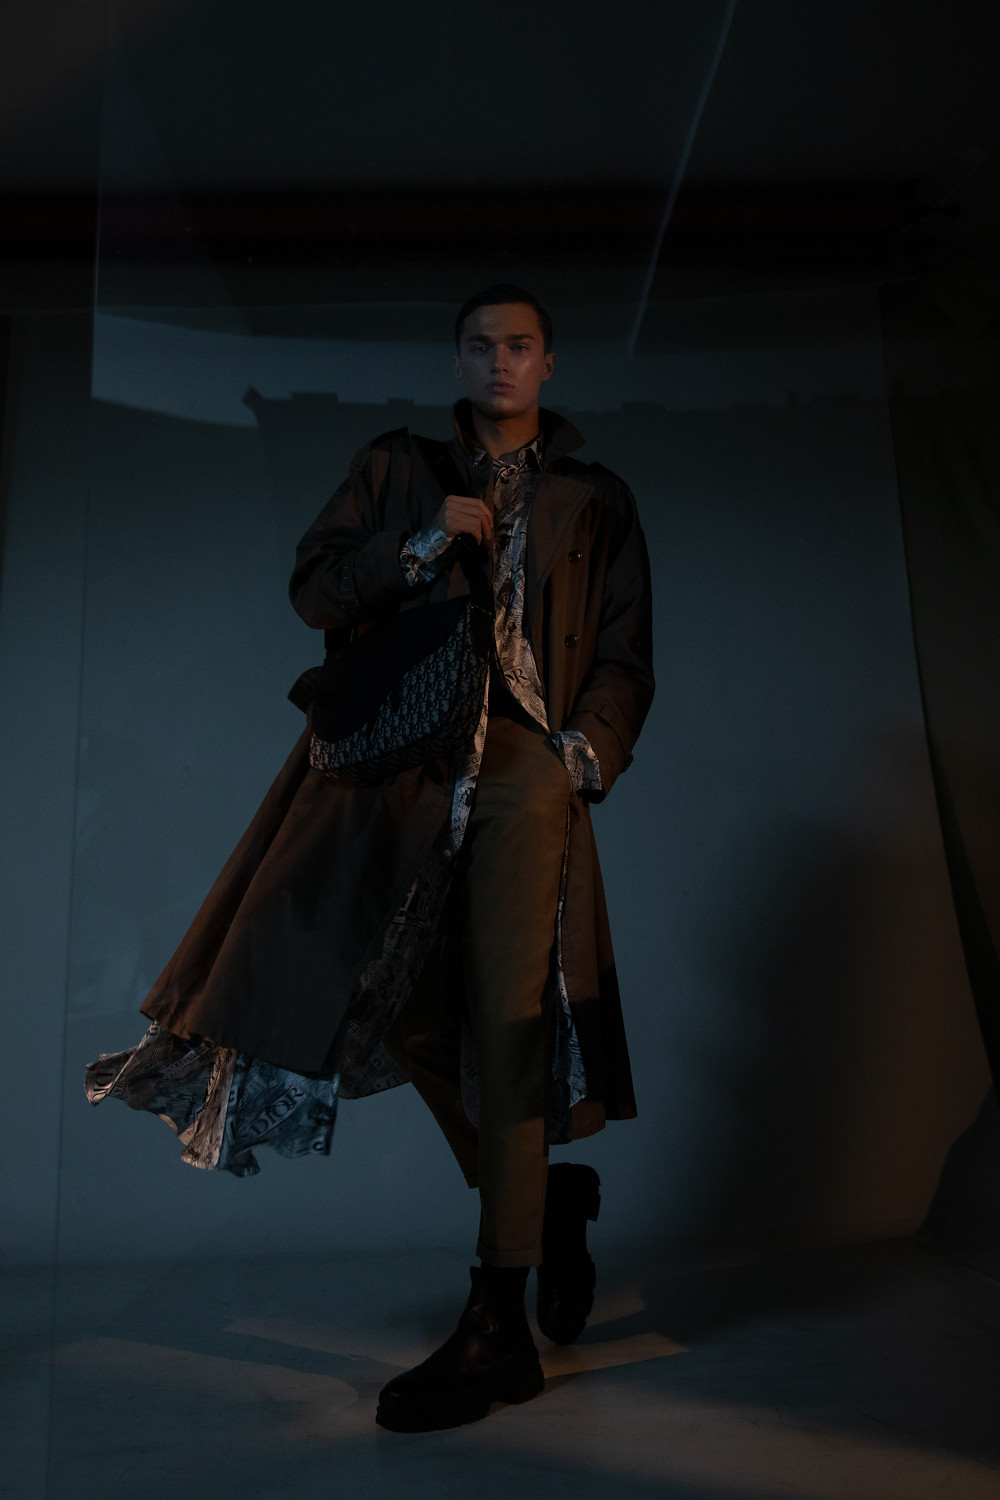 (left) coat BURBERRY shirt and bag DIOR MEN pants GIEVES & HAWKES boots STOCKHOLM STUDIOS (right) coat DIOR MEN